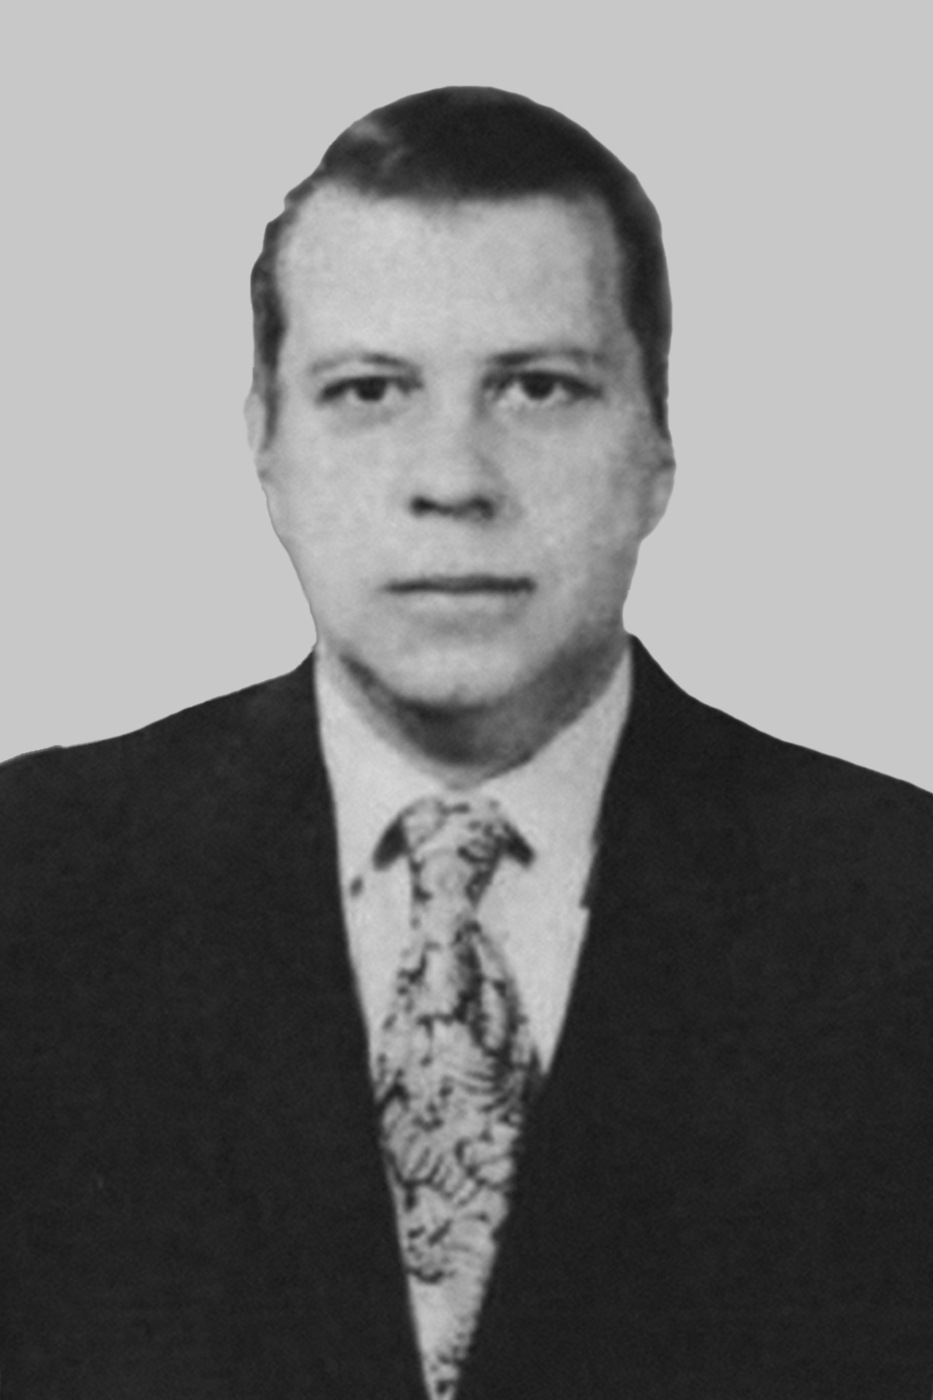 The FBI Wall of Honor remembers Special Agent Edward J. Knartzer, Jr., who died in a plane crash near Upperville, Virginia, on December 1, 1974.